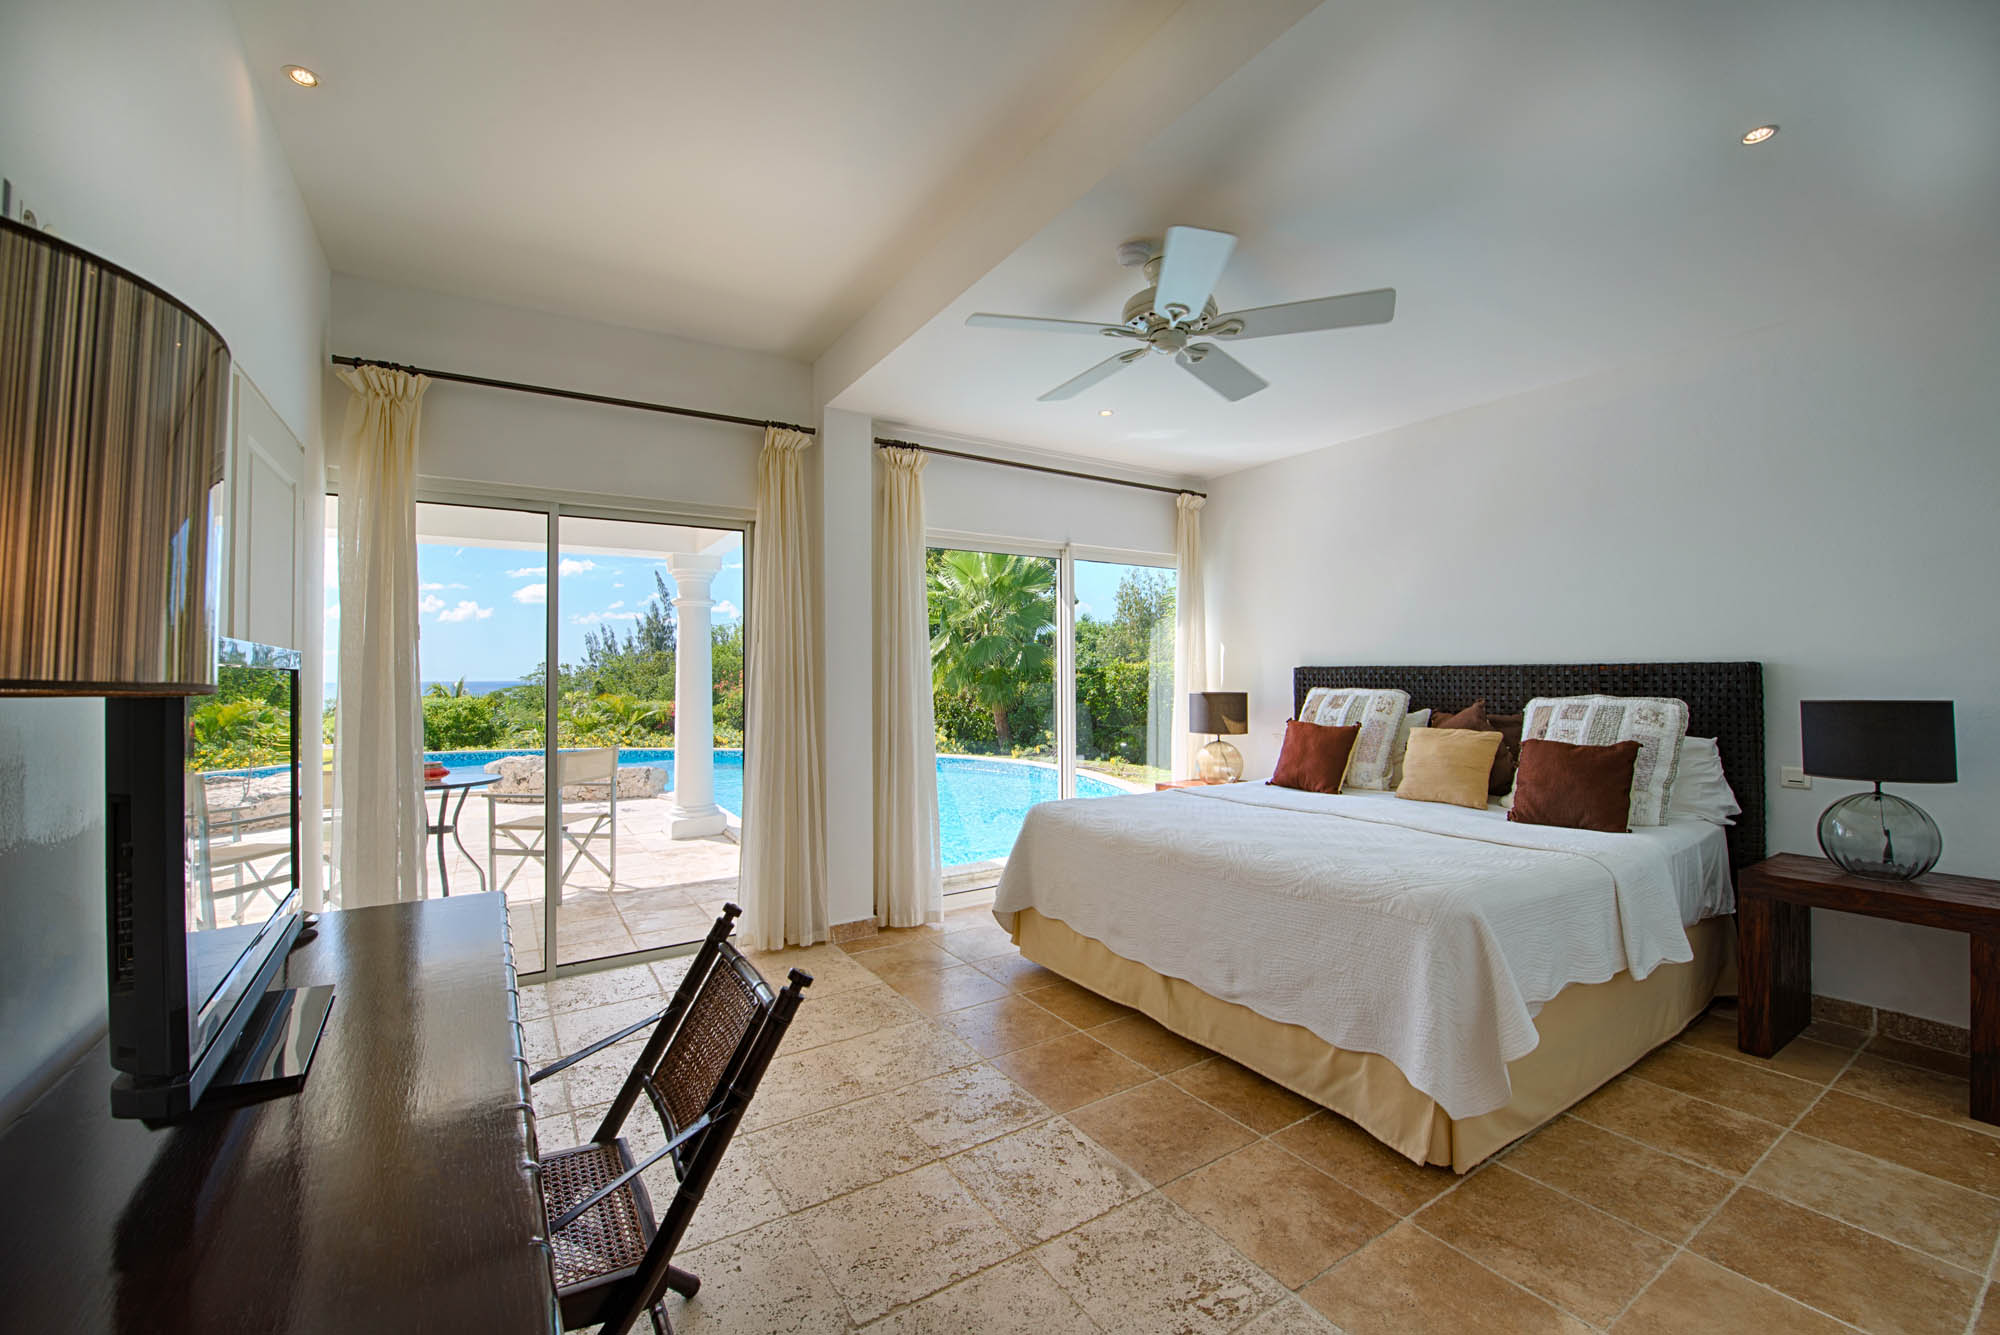 Feel the smoothing breeze from the ocean at Lune de Miel villa rental, Baie Longue, Terres-Basses, Saint Martin, Caribbean.